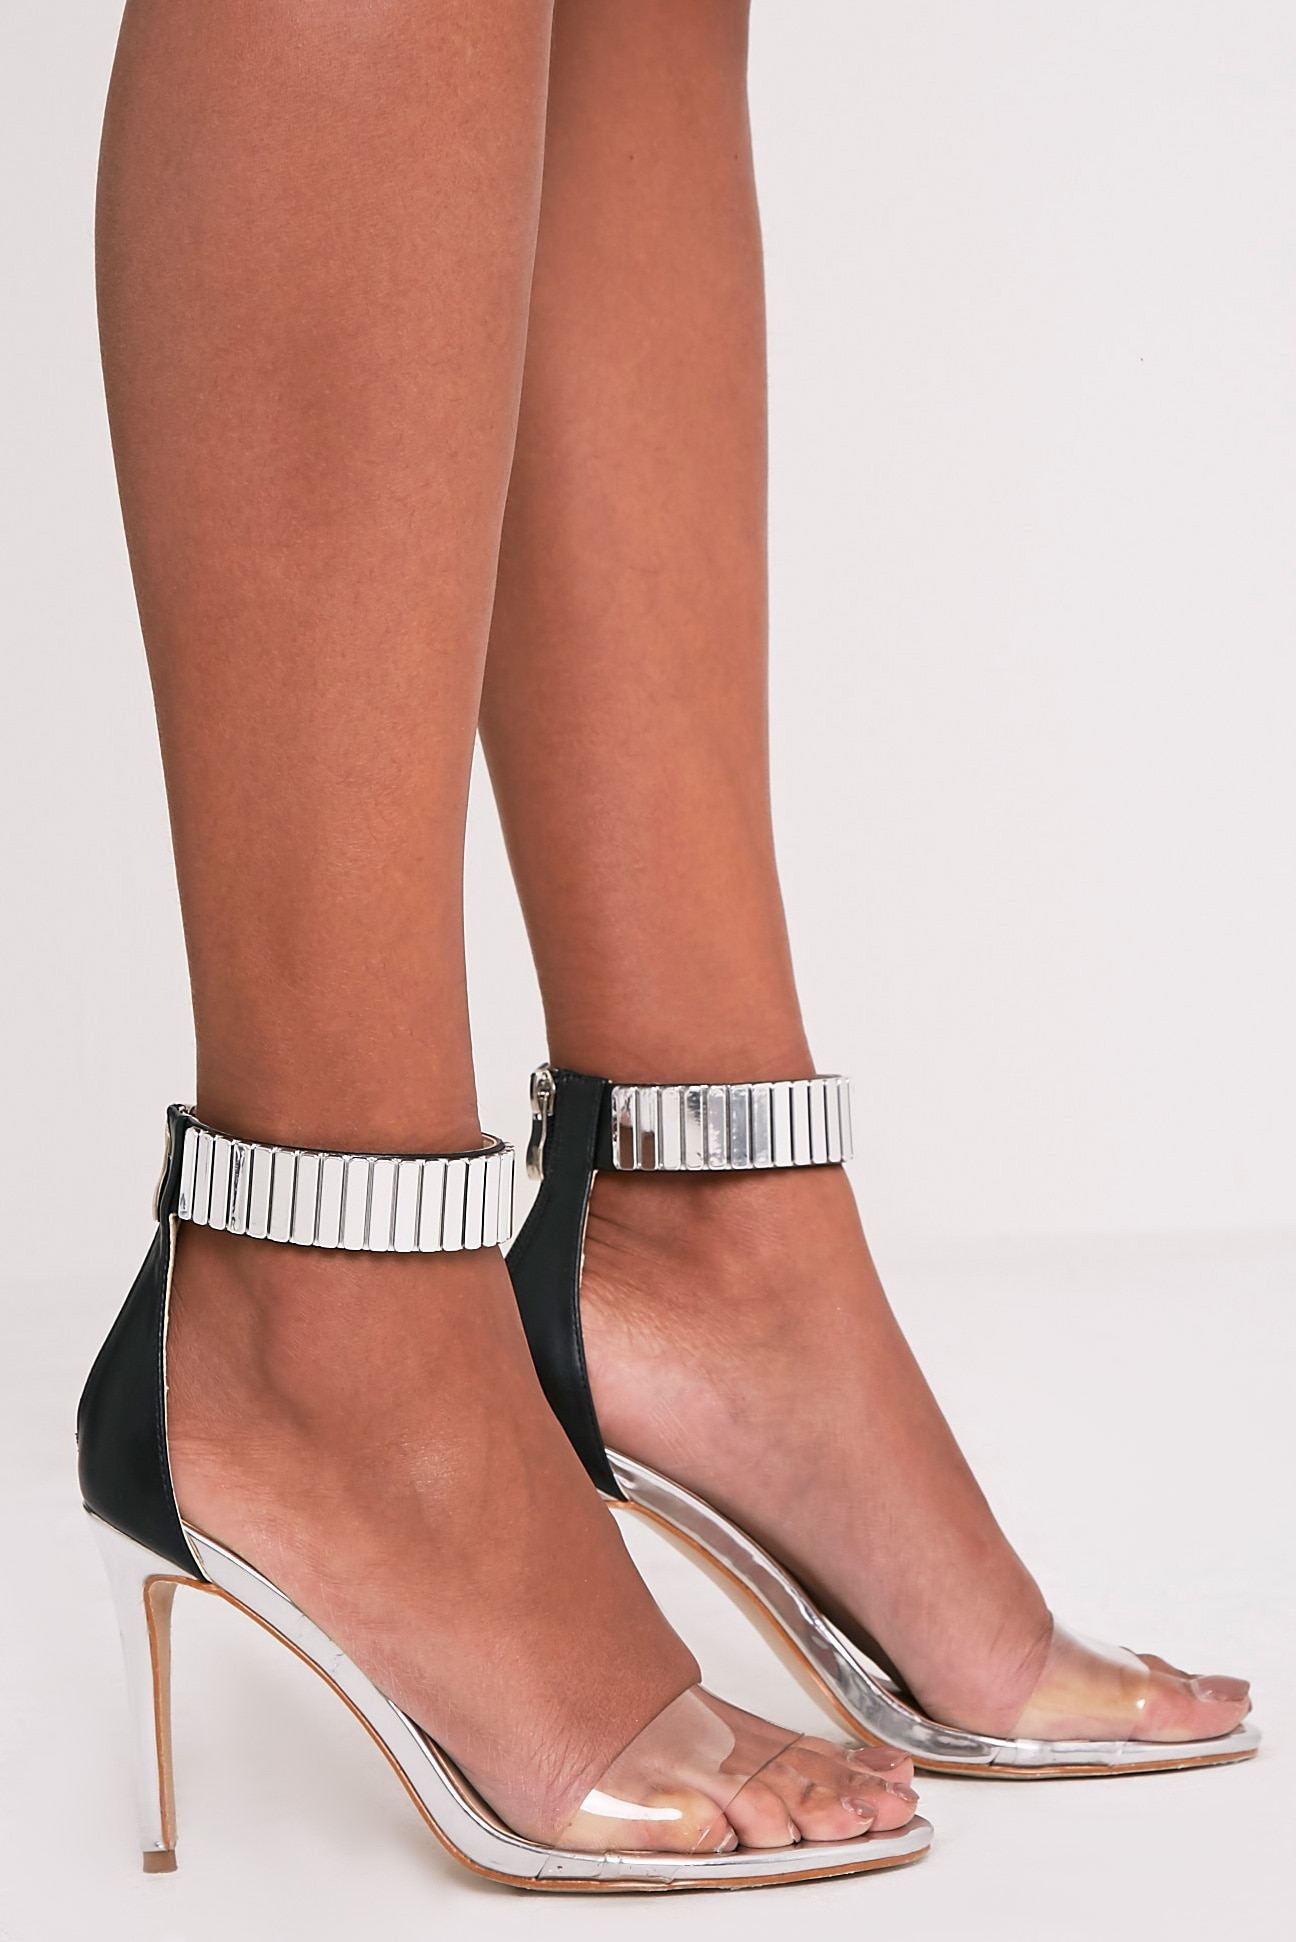 Christal Silver Metal Ankle Cuff Heeled Sandals 3